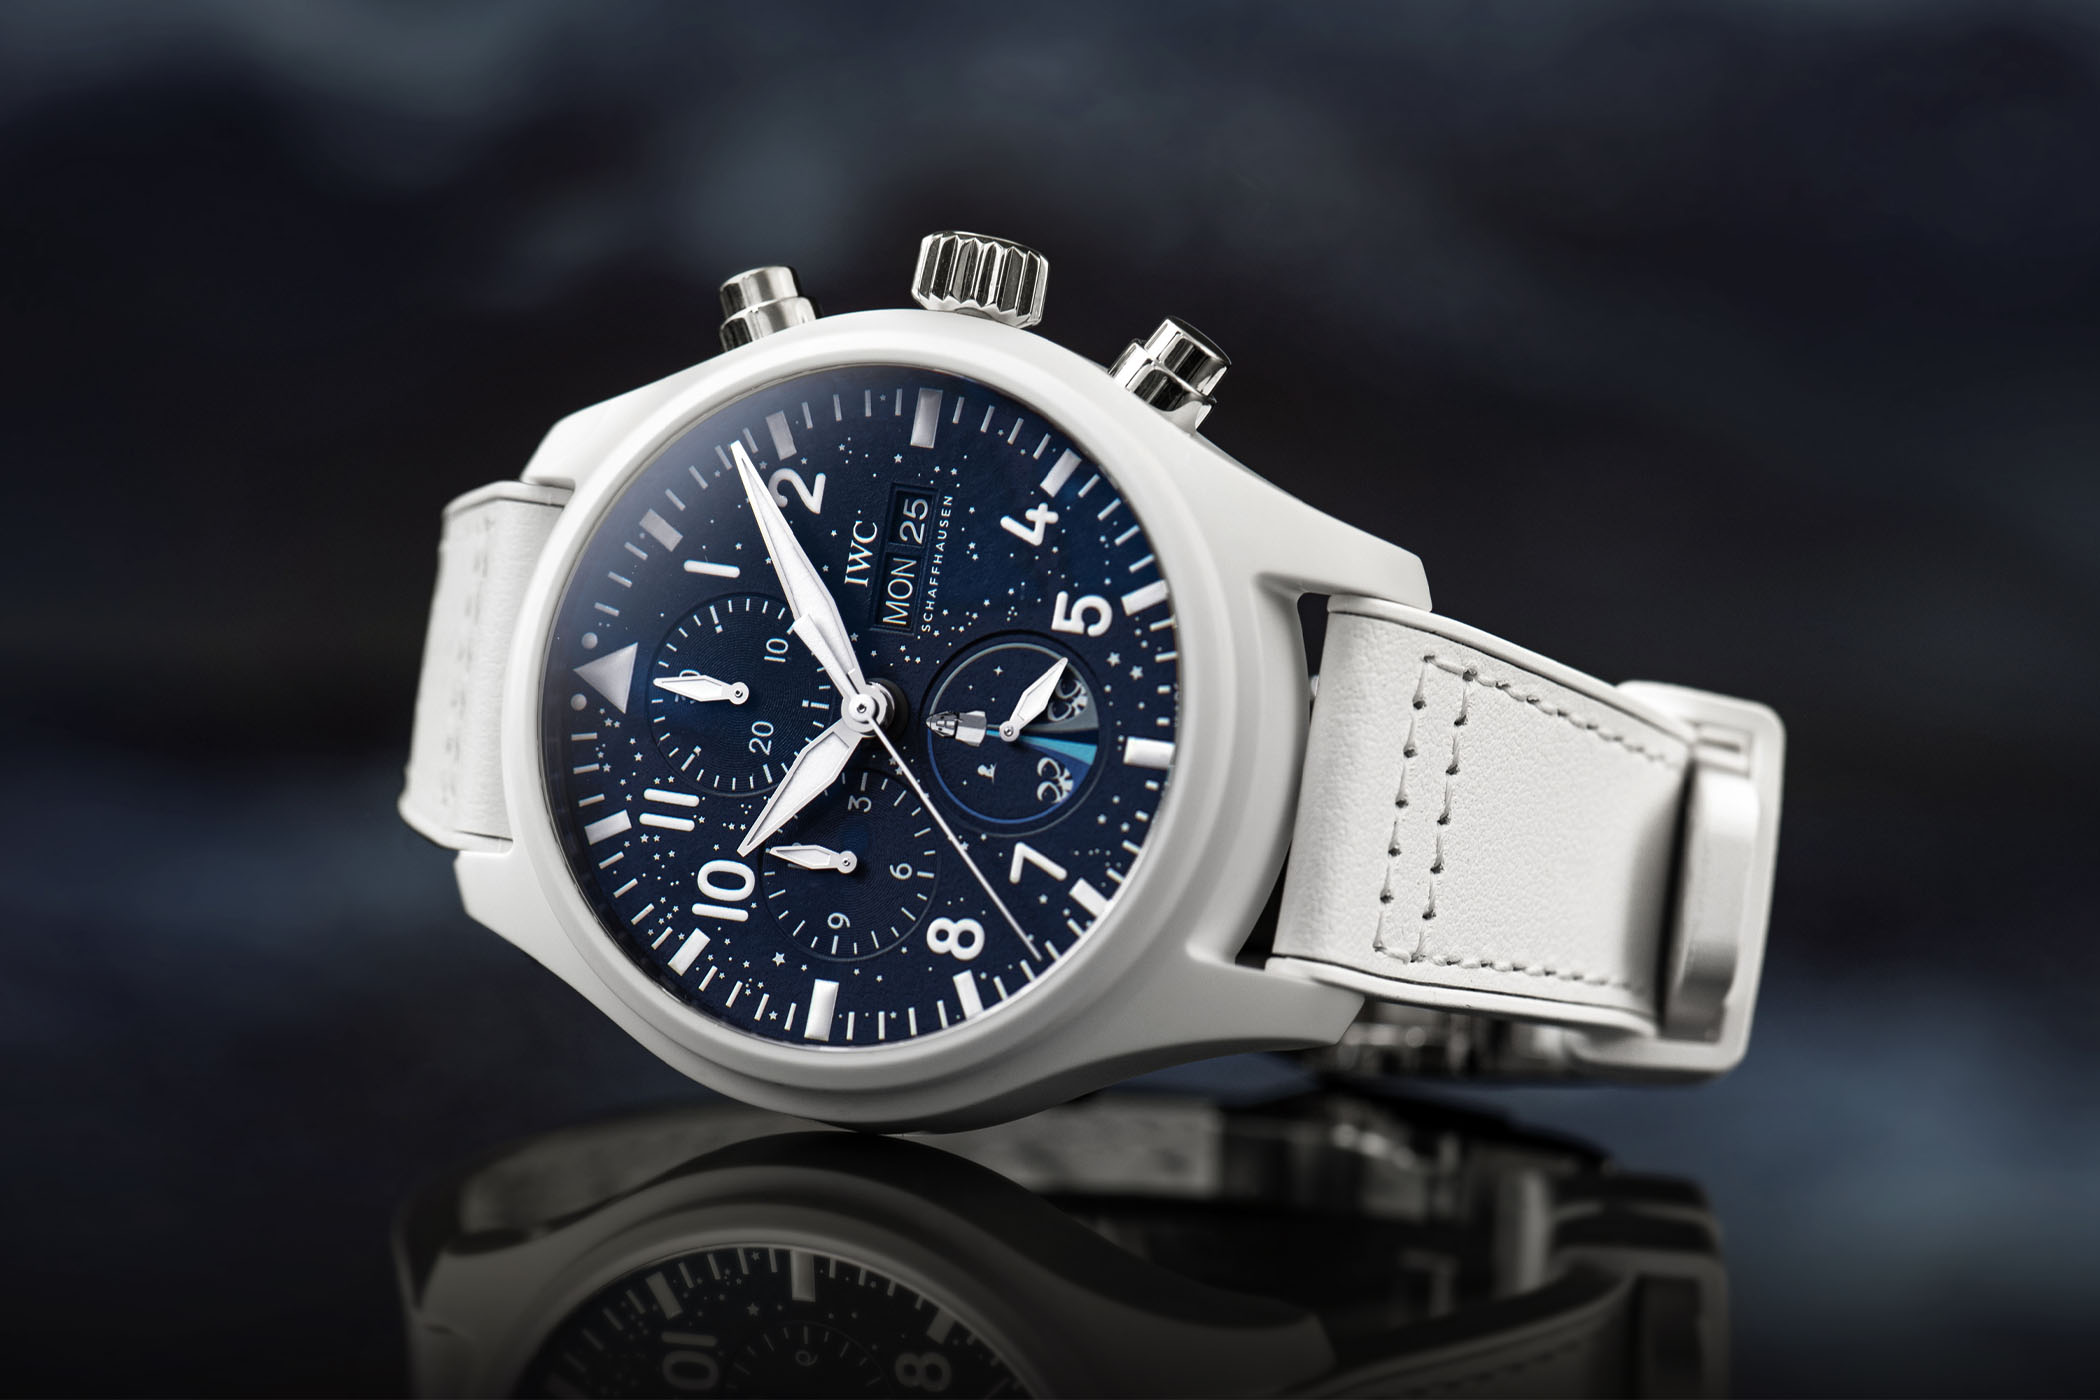 IWC Pilot's Watch Chronograph Edition Inspiration4 Space Watches White Ceramic IW389110